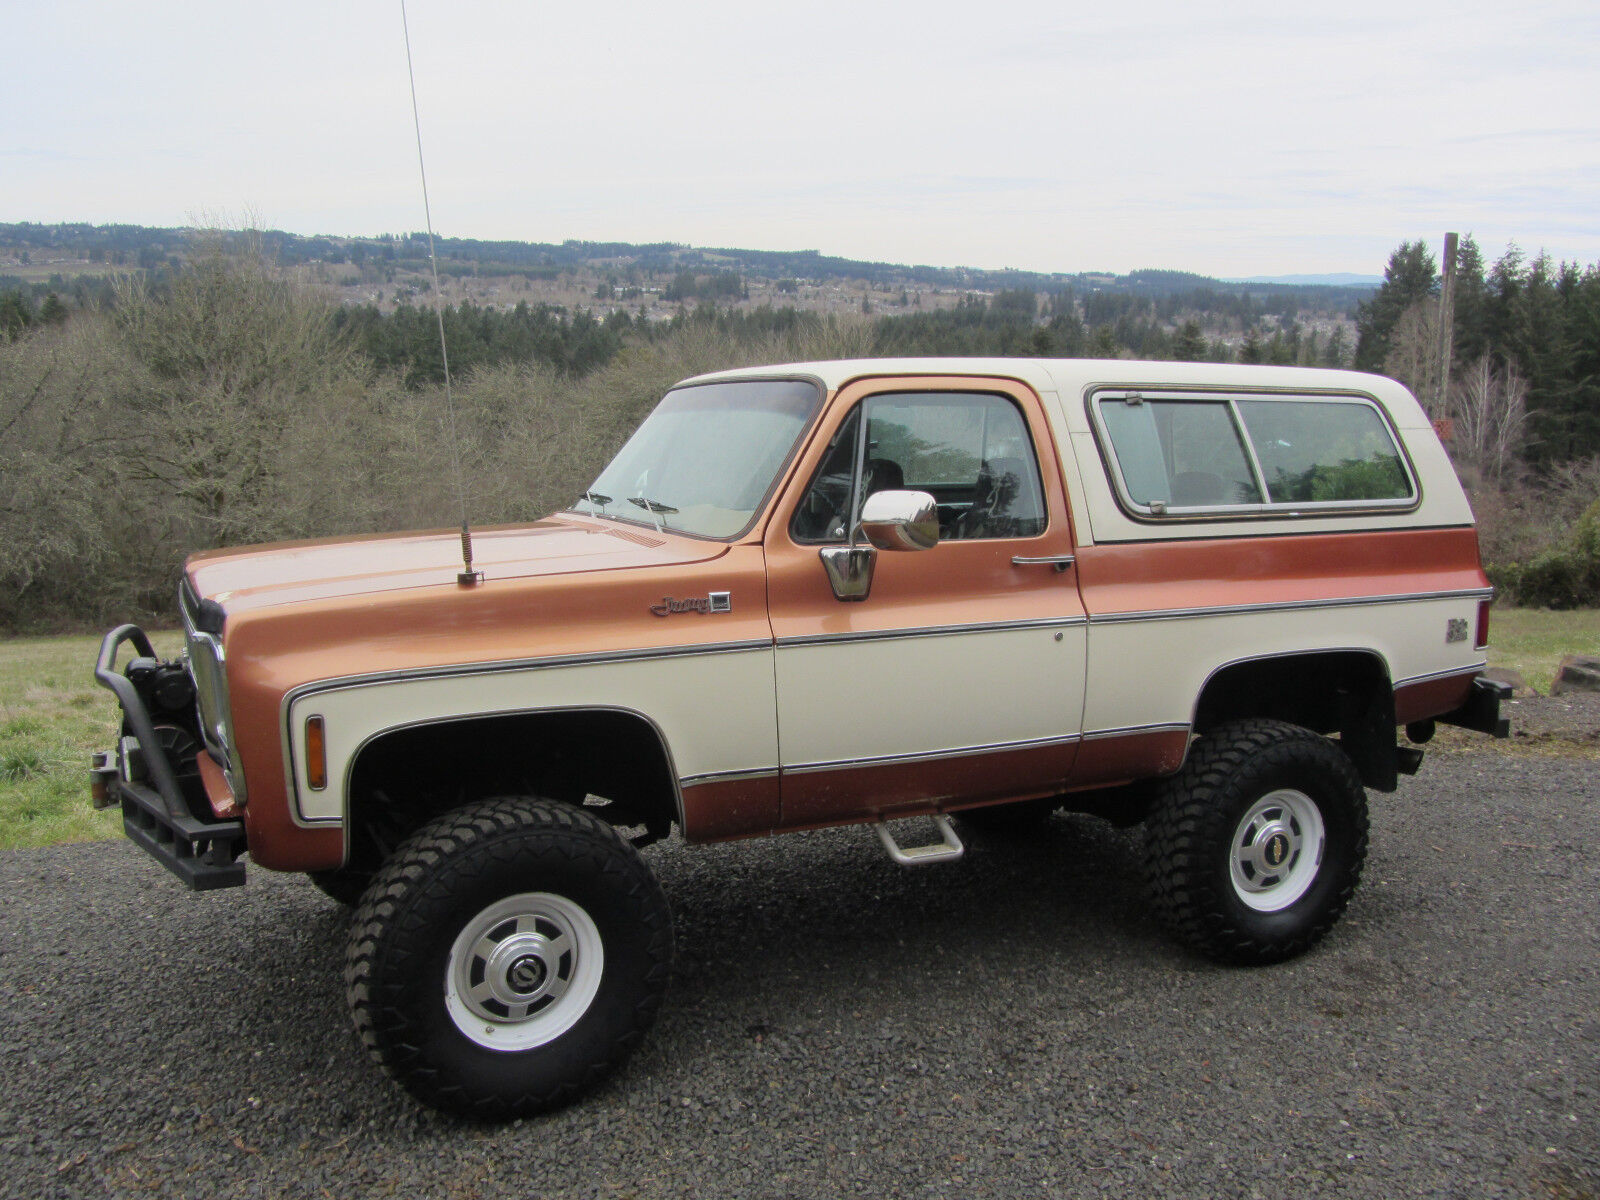 1979 Gmc Jimmy K5 Chevrolet Blazer High Sierra Used Gmc